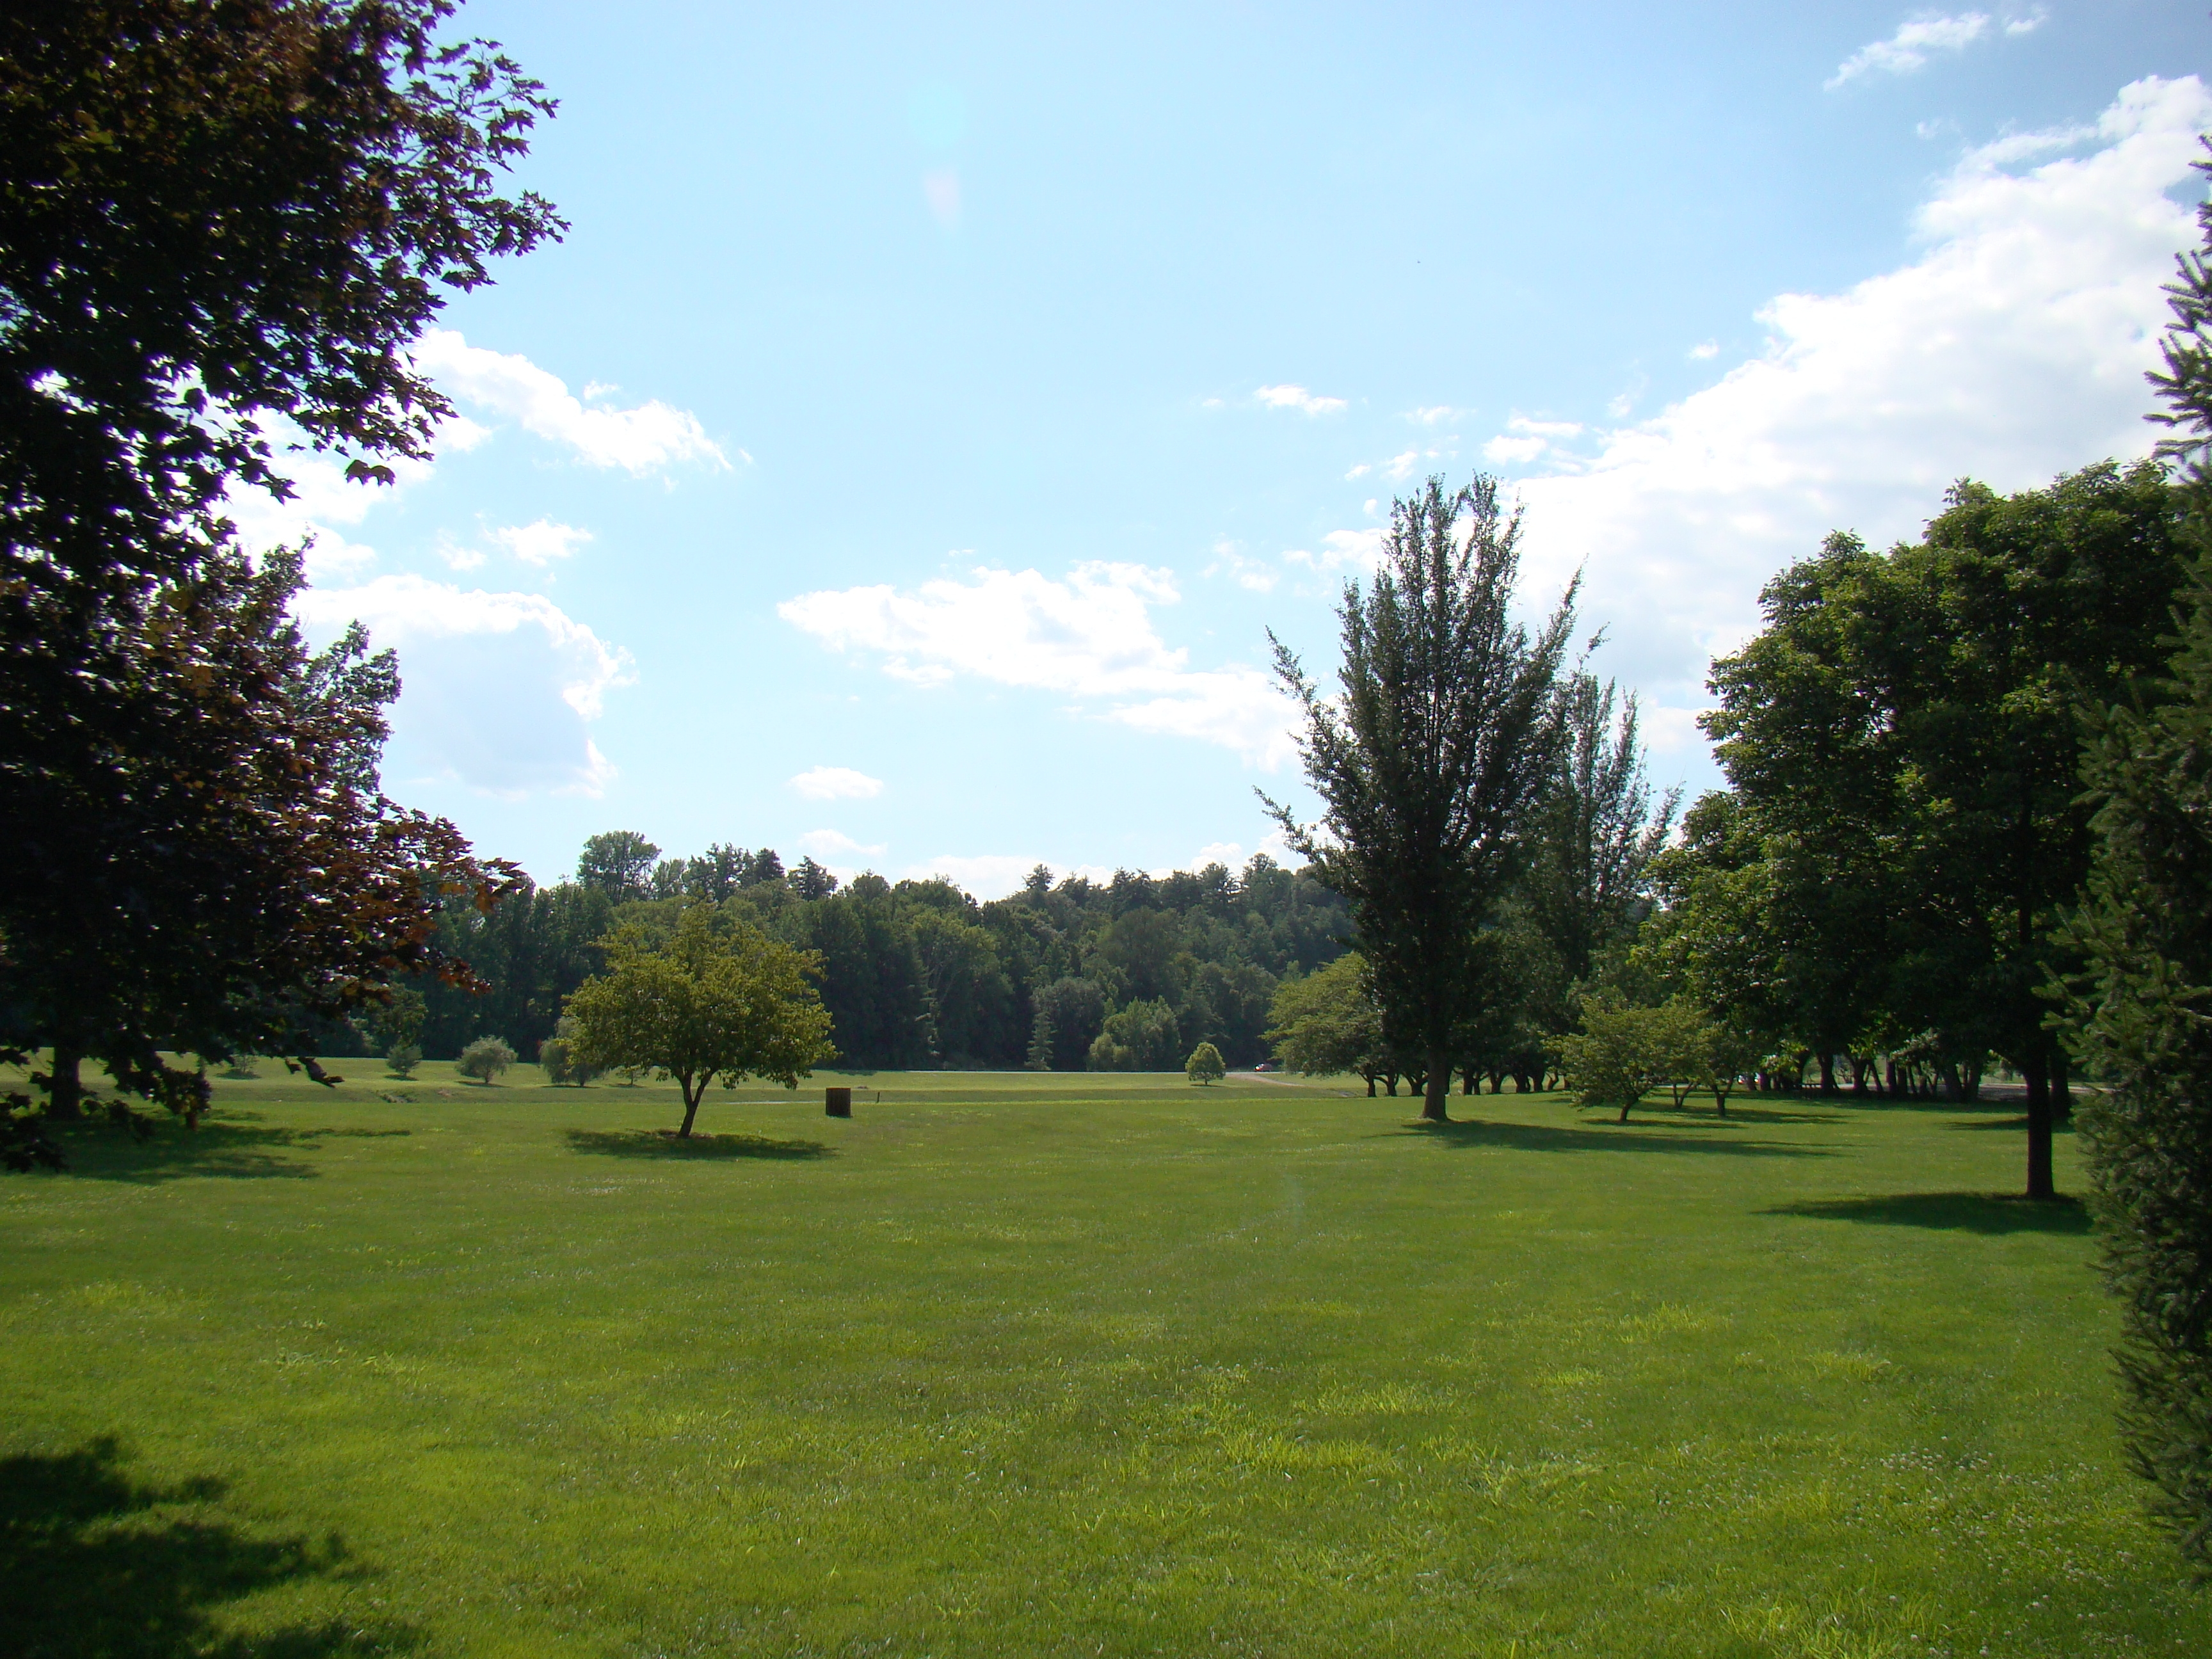 Former Grounds of the Cutler Botanic Gardens